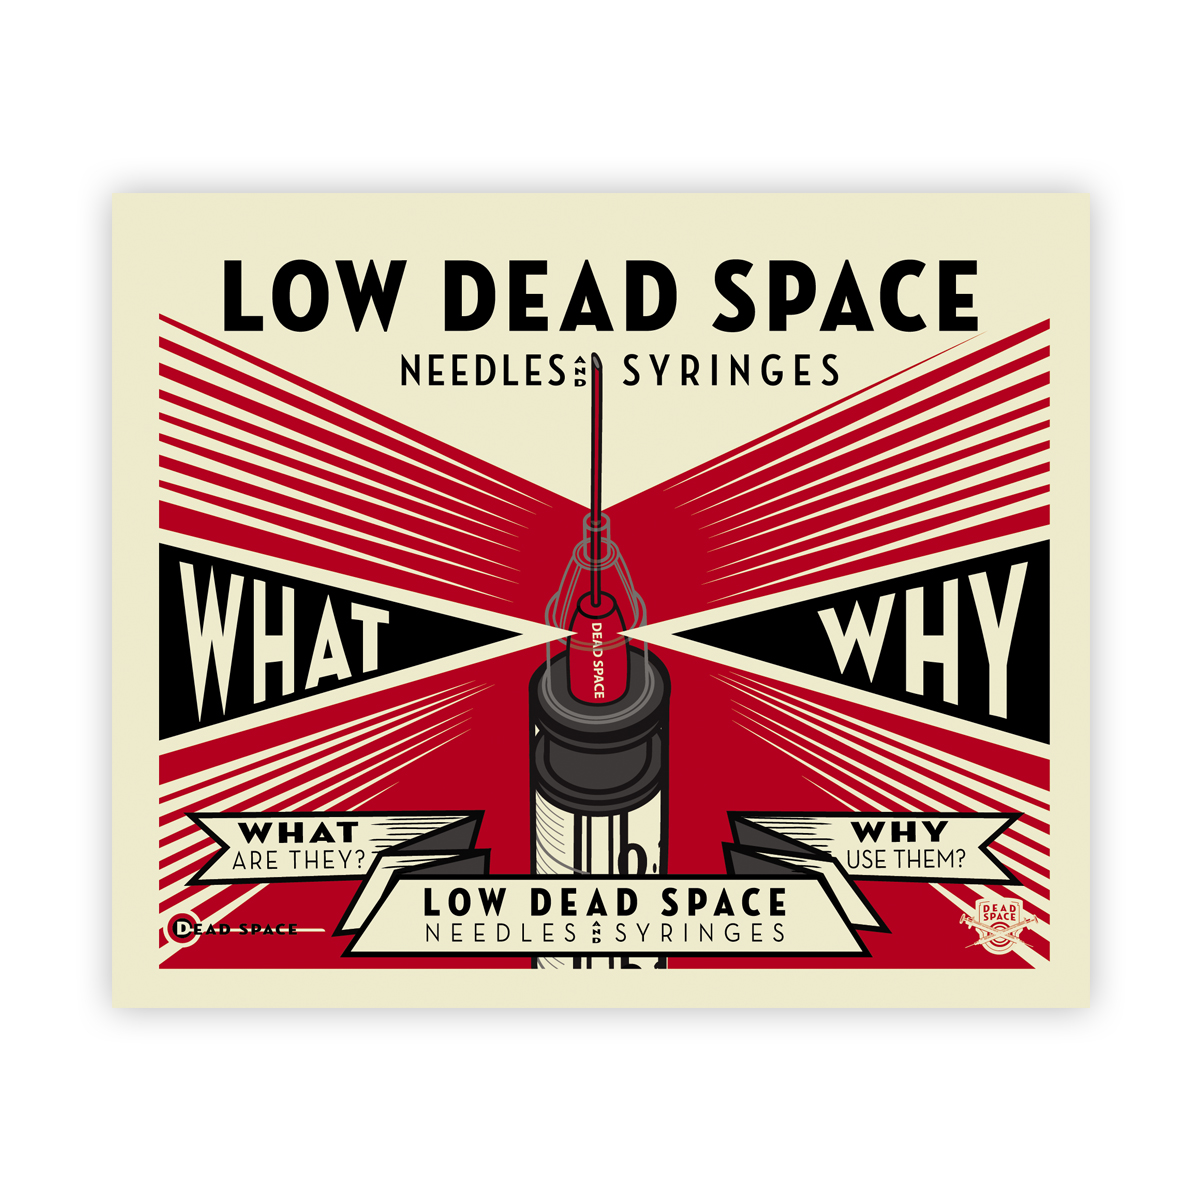 Low dead space needles and syringes: what and why? booklet